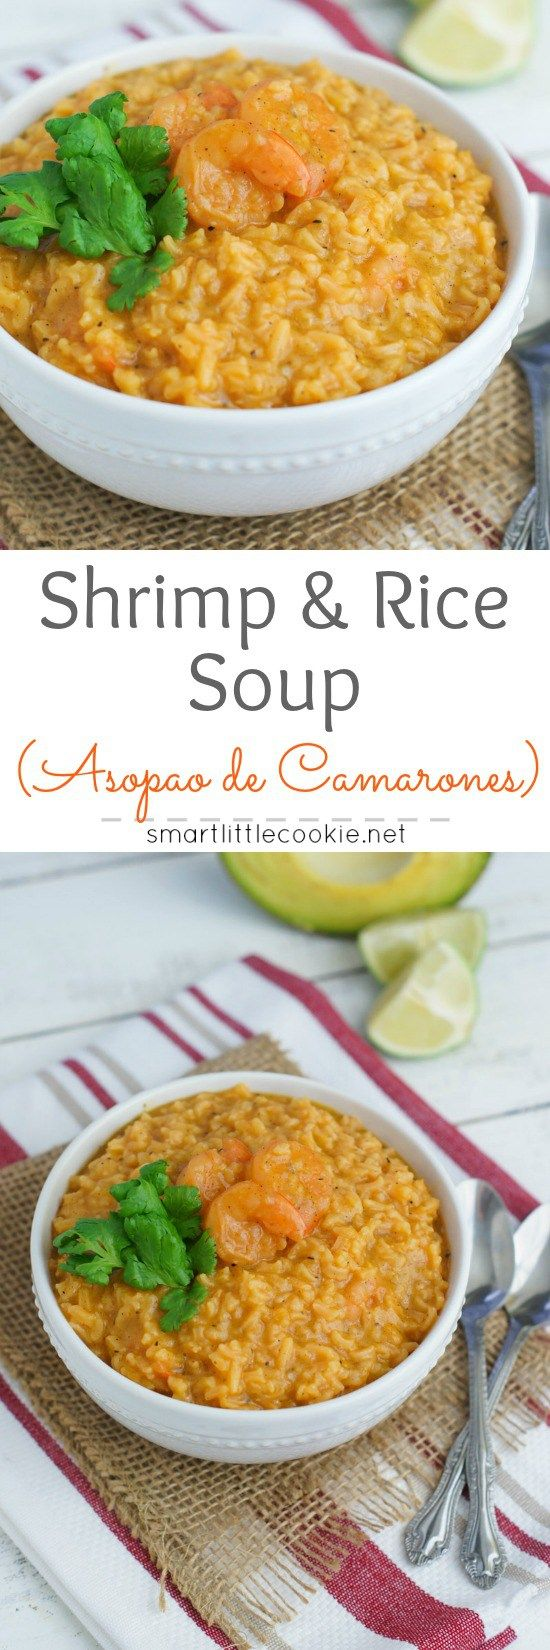 Made in one pot, this rice and shrimp soup is super easy to prepare. In only 30 minutes, you´ll have a delicious hearty soup that the entire family will love.